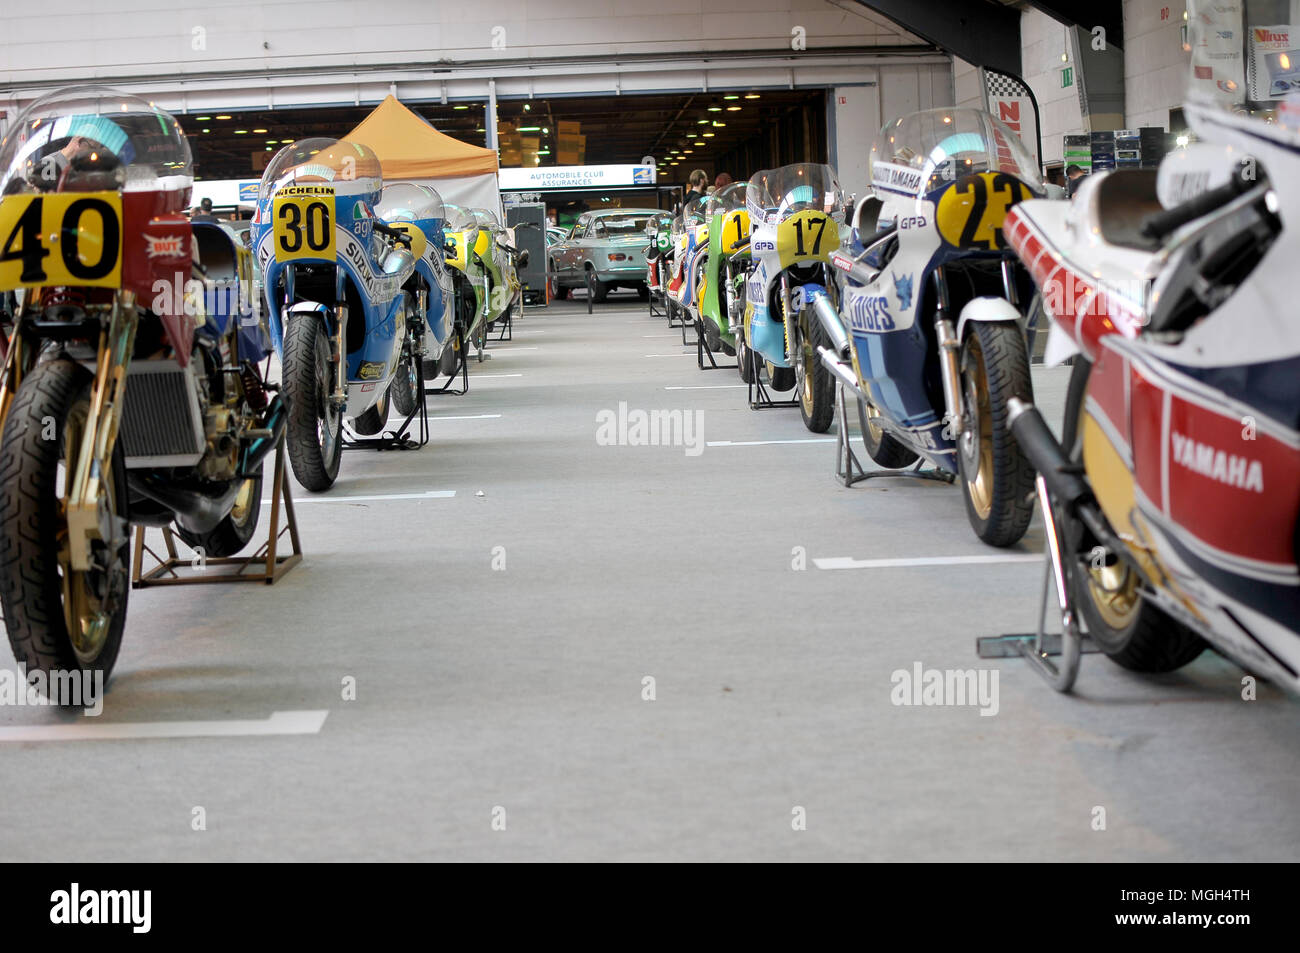 Legends motorbikes course - Stock Image